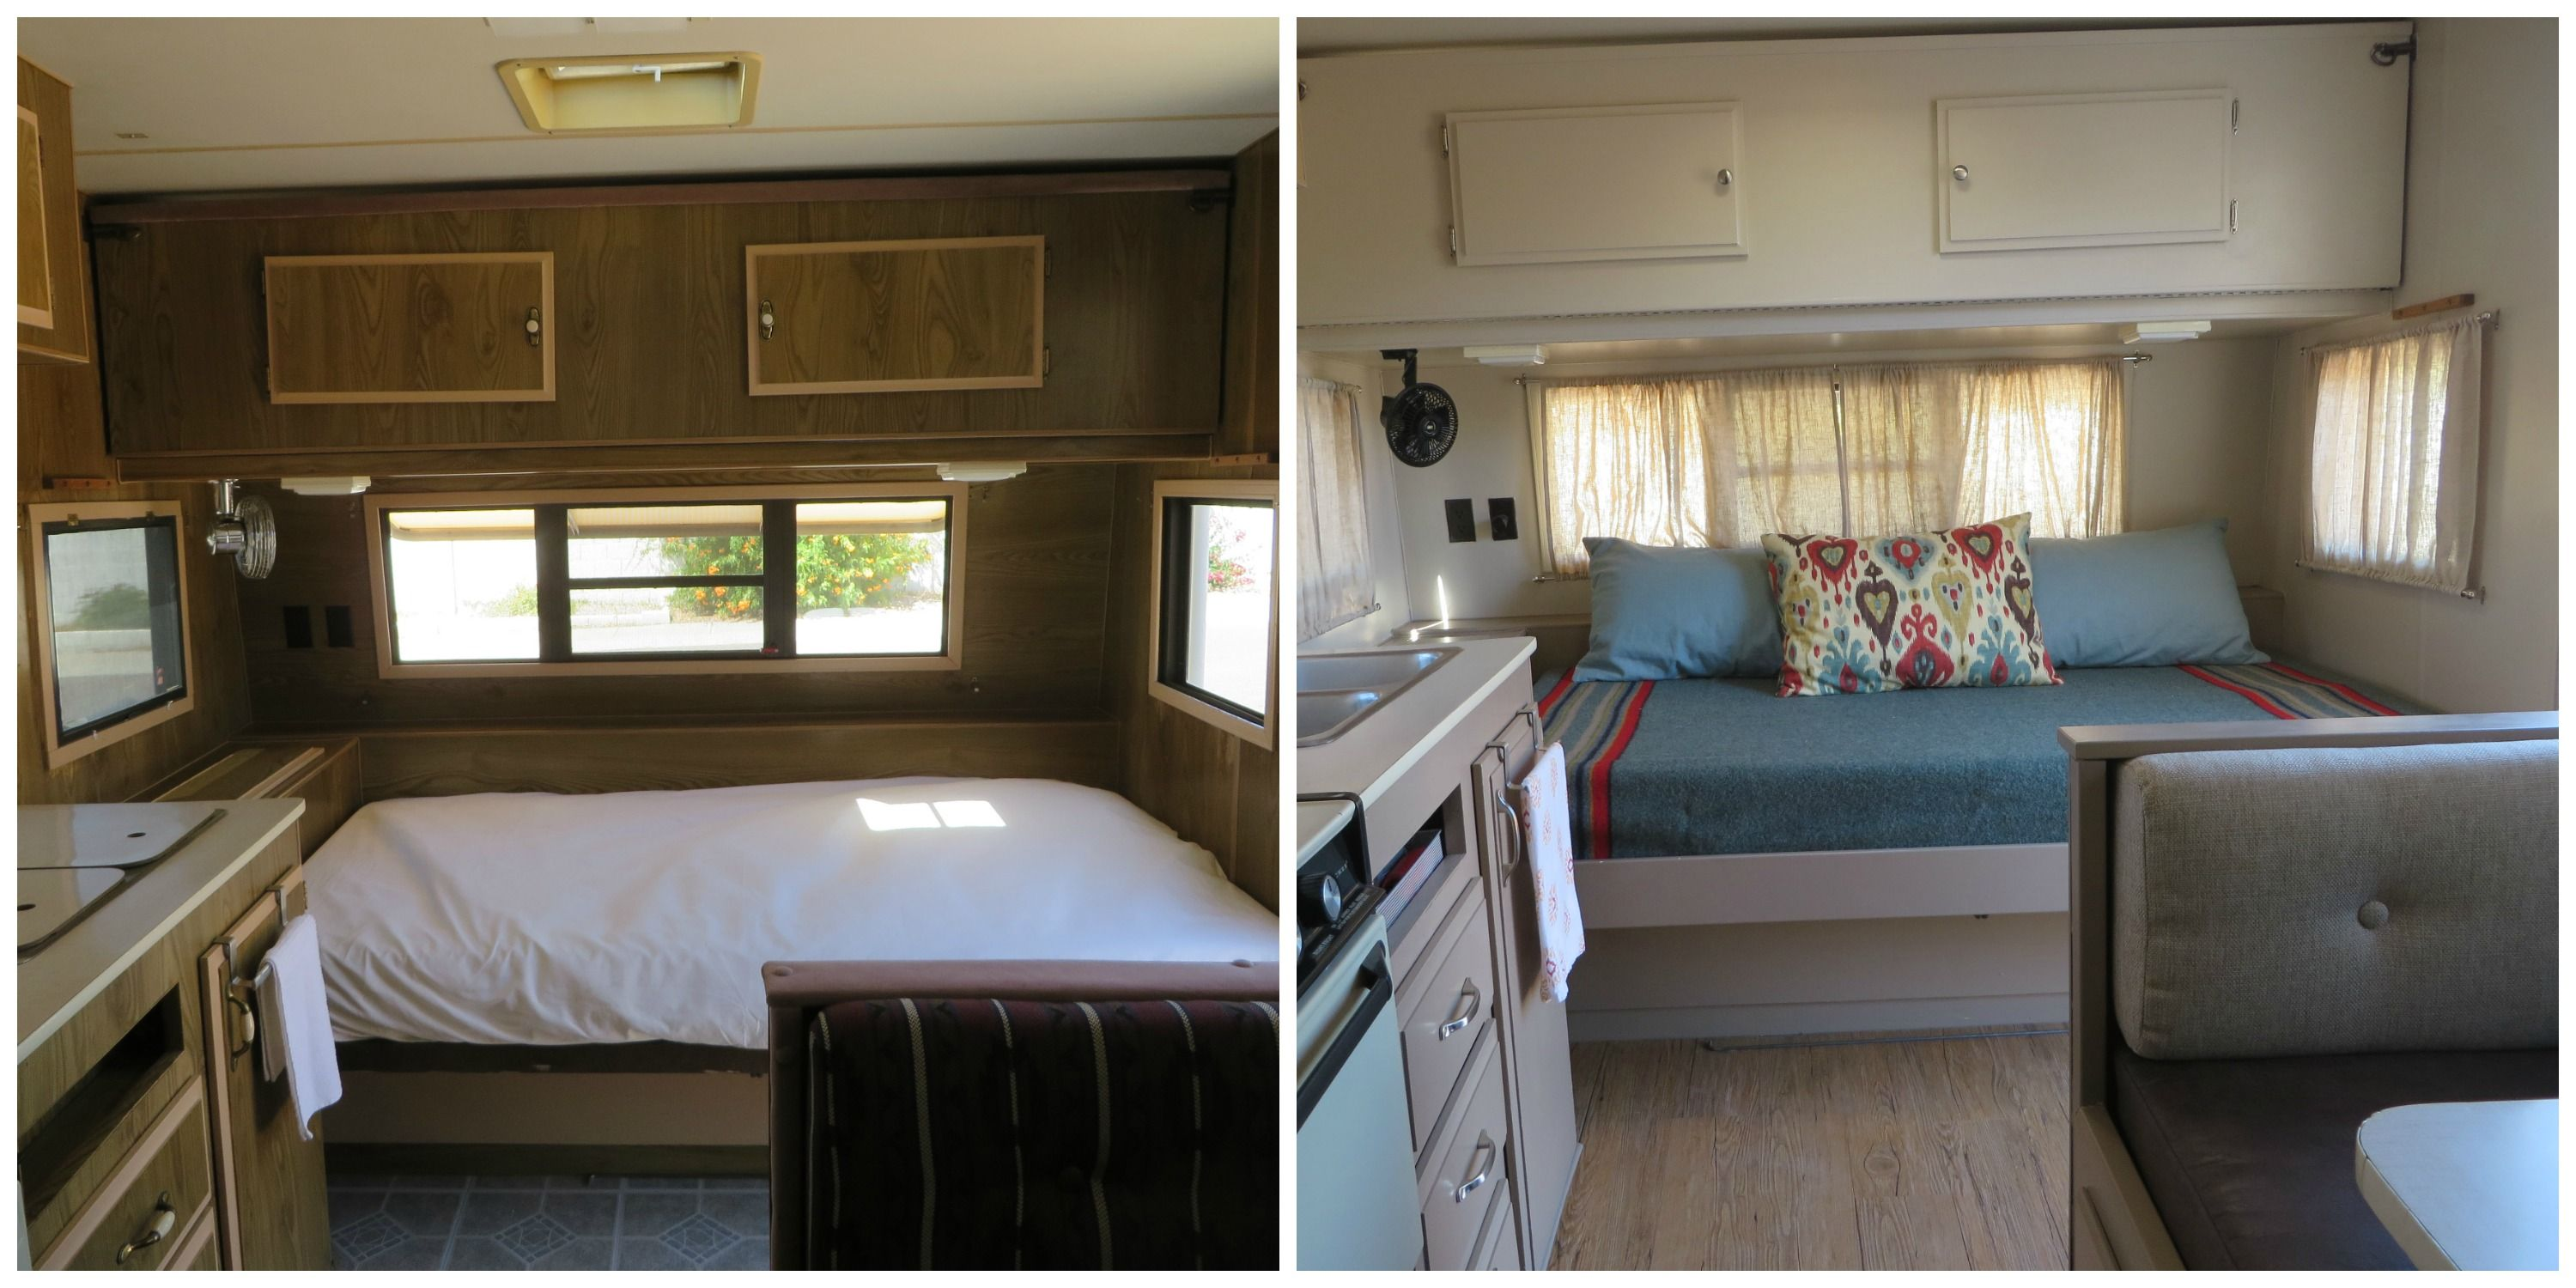 Trailer bed before & after Trailer living, Home decor, Bed